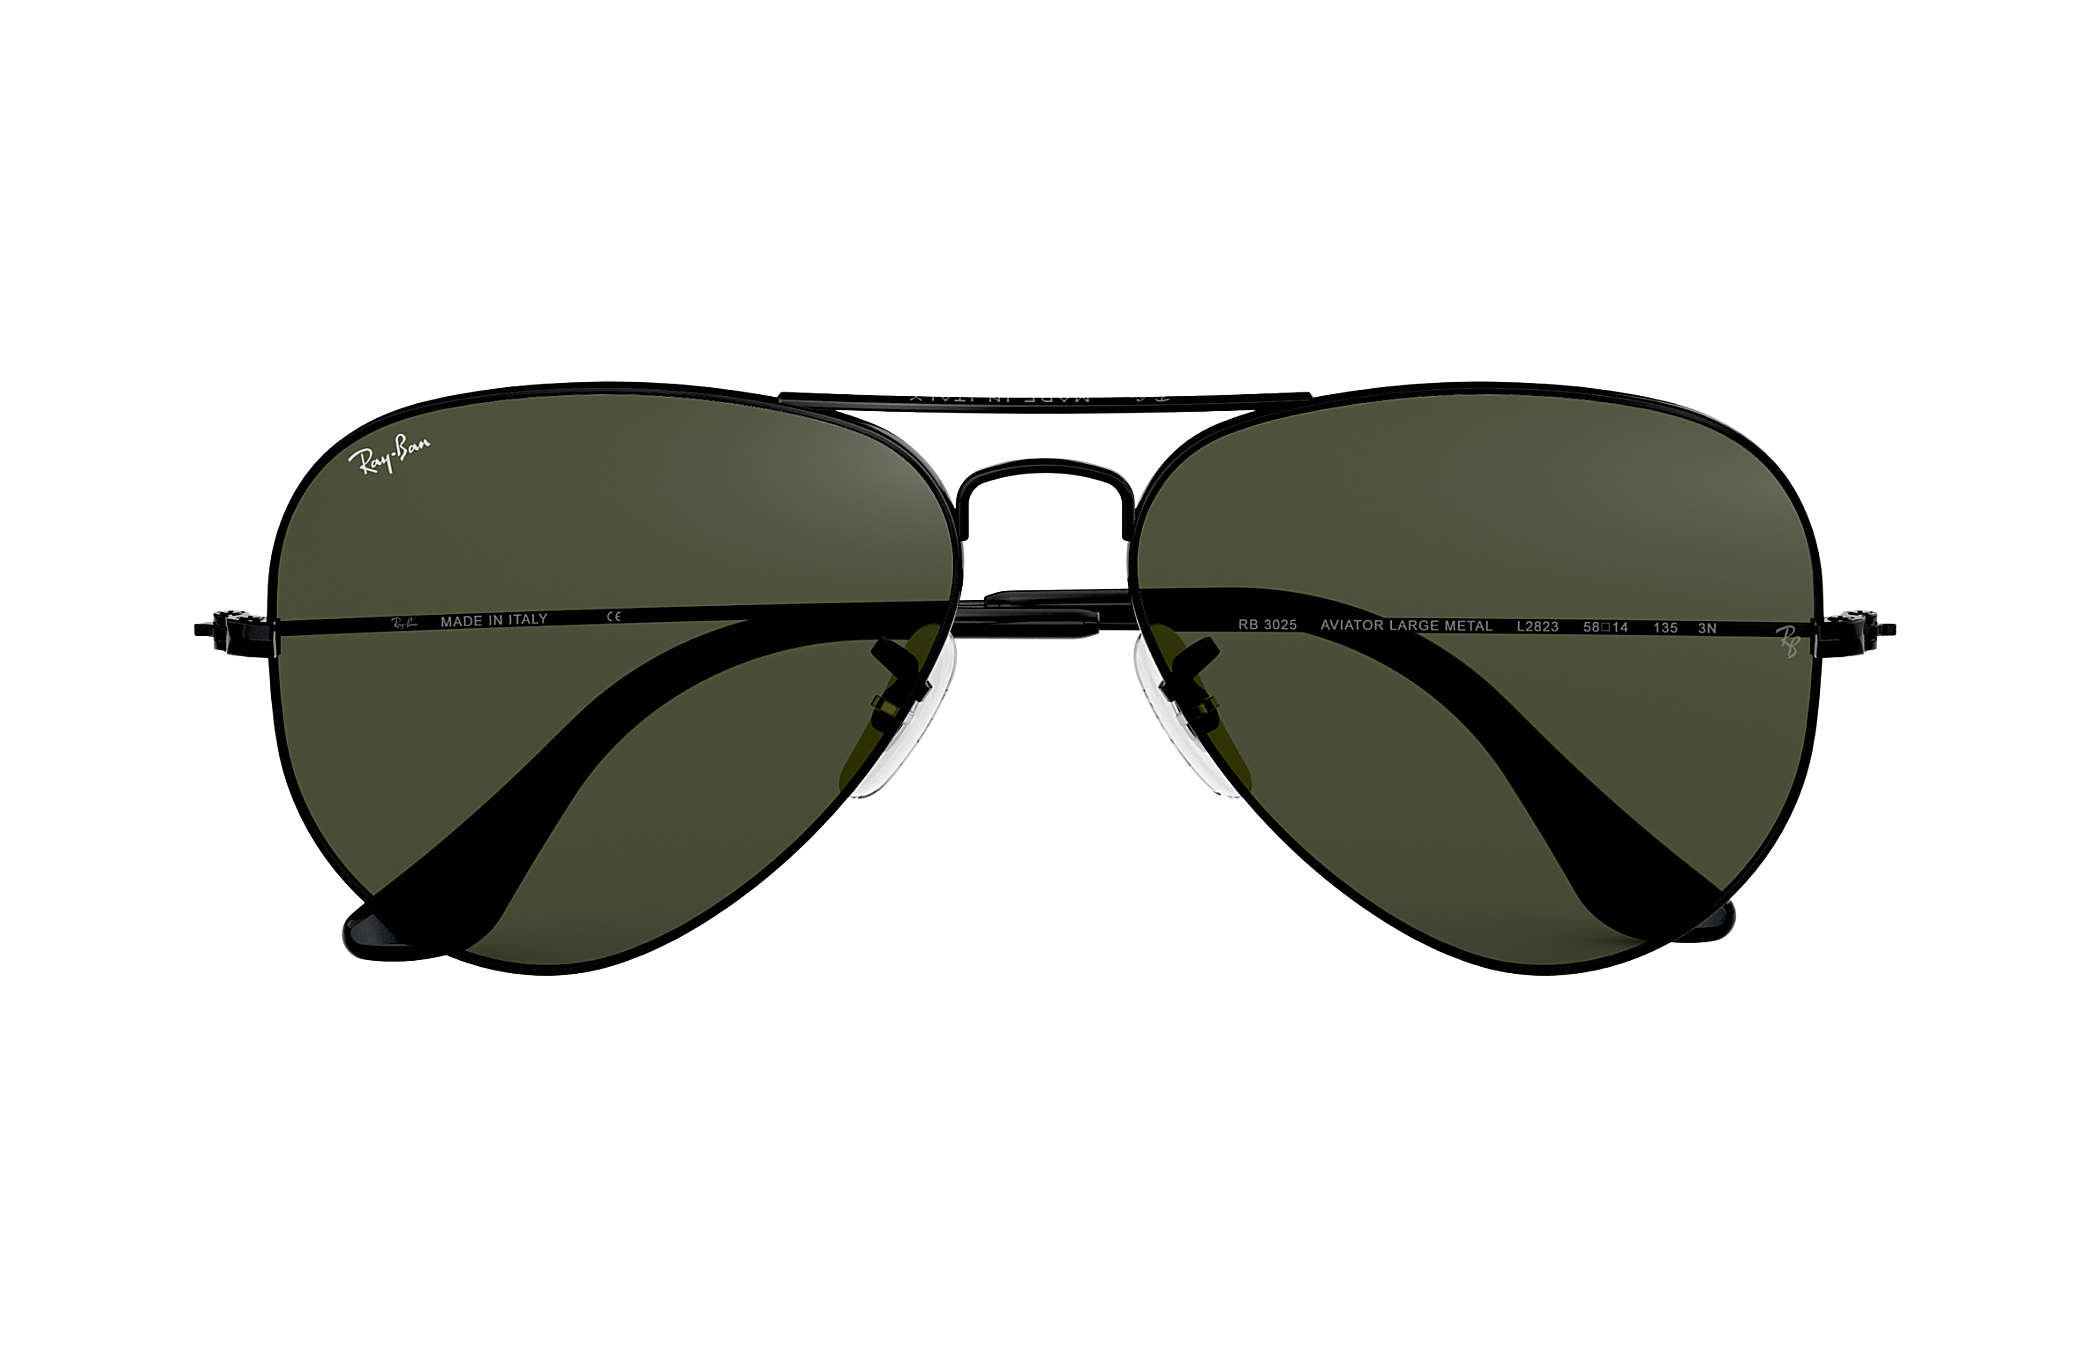 7f59f931fdcca Ray-Ban Aviator Classic RB3025 Black - Metal - Green Lenses ...